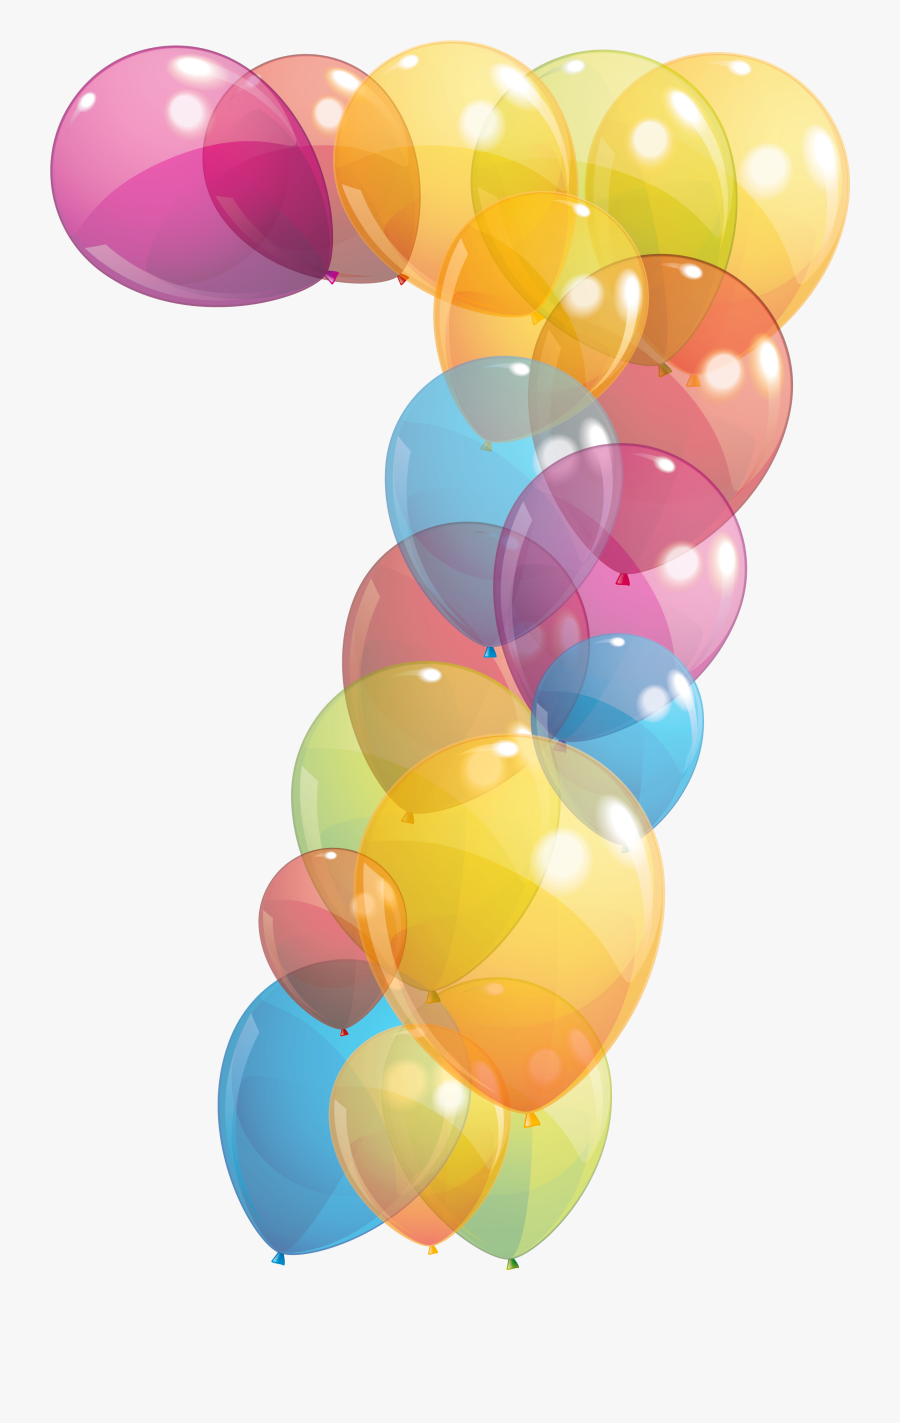 Transparent Seven Number Of Balloons Png Clipart Image - Transparent Number 7 With Balloons Png, Transparent Clipart